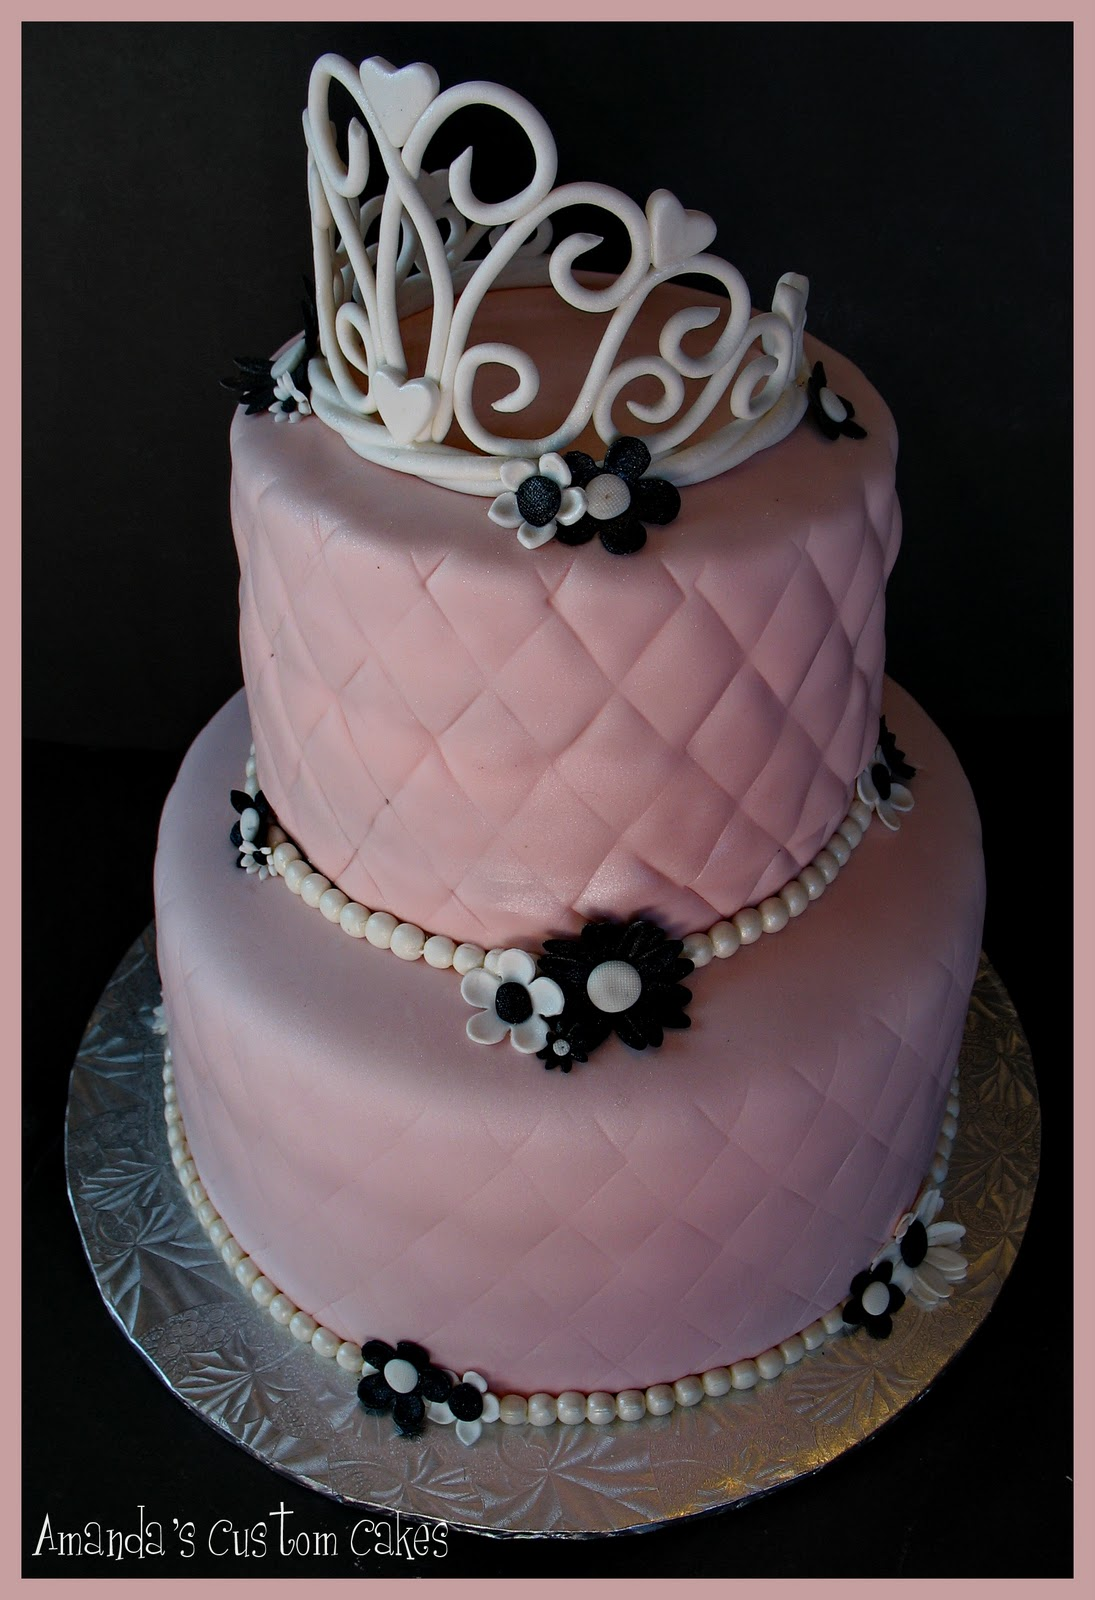 bridal shower cake vanilla cake with strawberry creamcheese filling covered in fondant gumpaste tiara pearls and flowers dusted in pearl dust